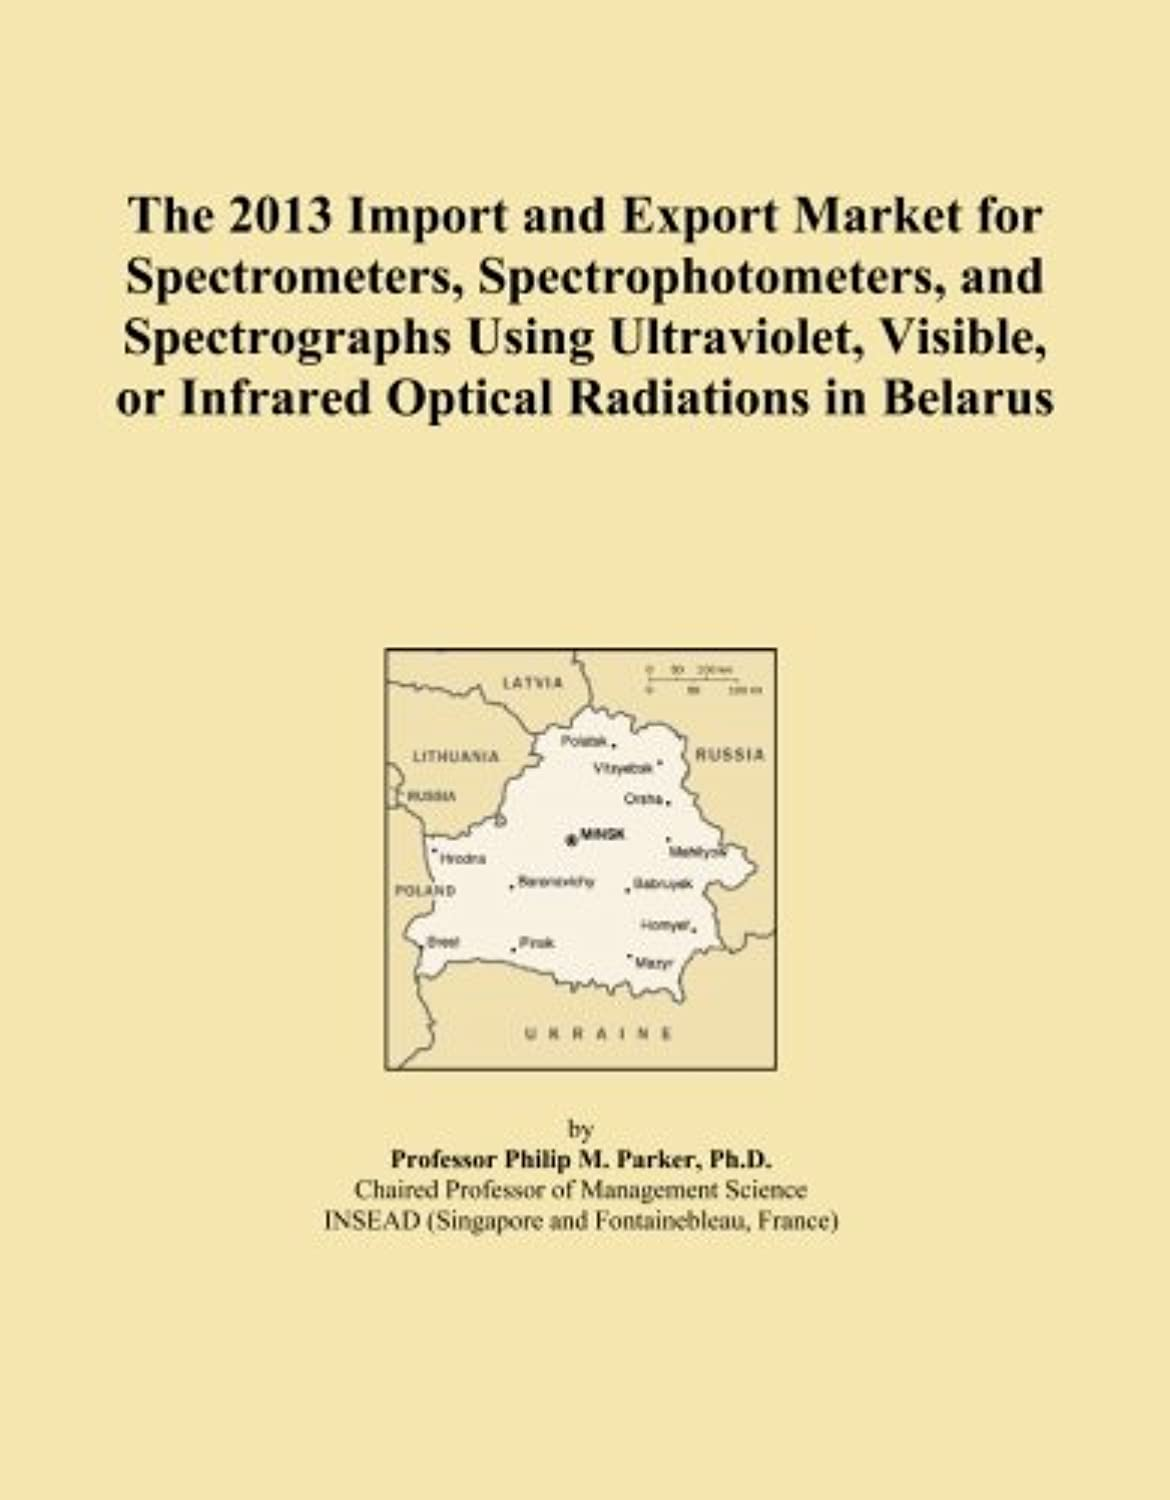 The 2013 Import and Export Market for Spectrometers, Spectrophotometers, and Spectrographs Using Ultraviolet, Visible, or Infrared Optical Radiations in Belarus